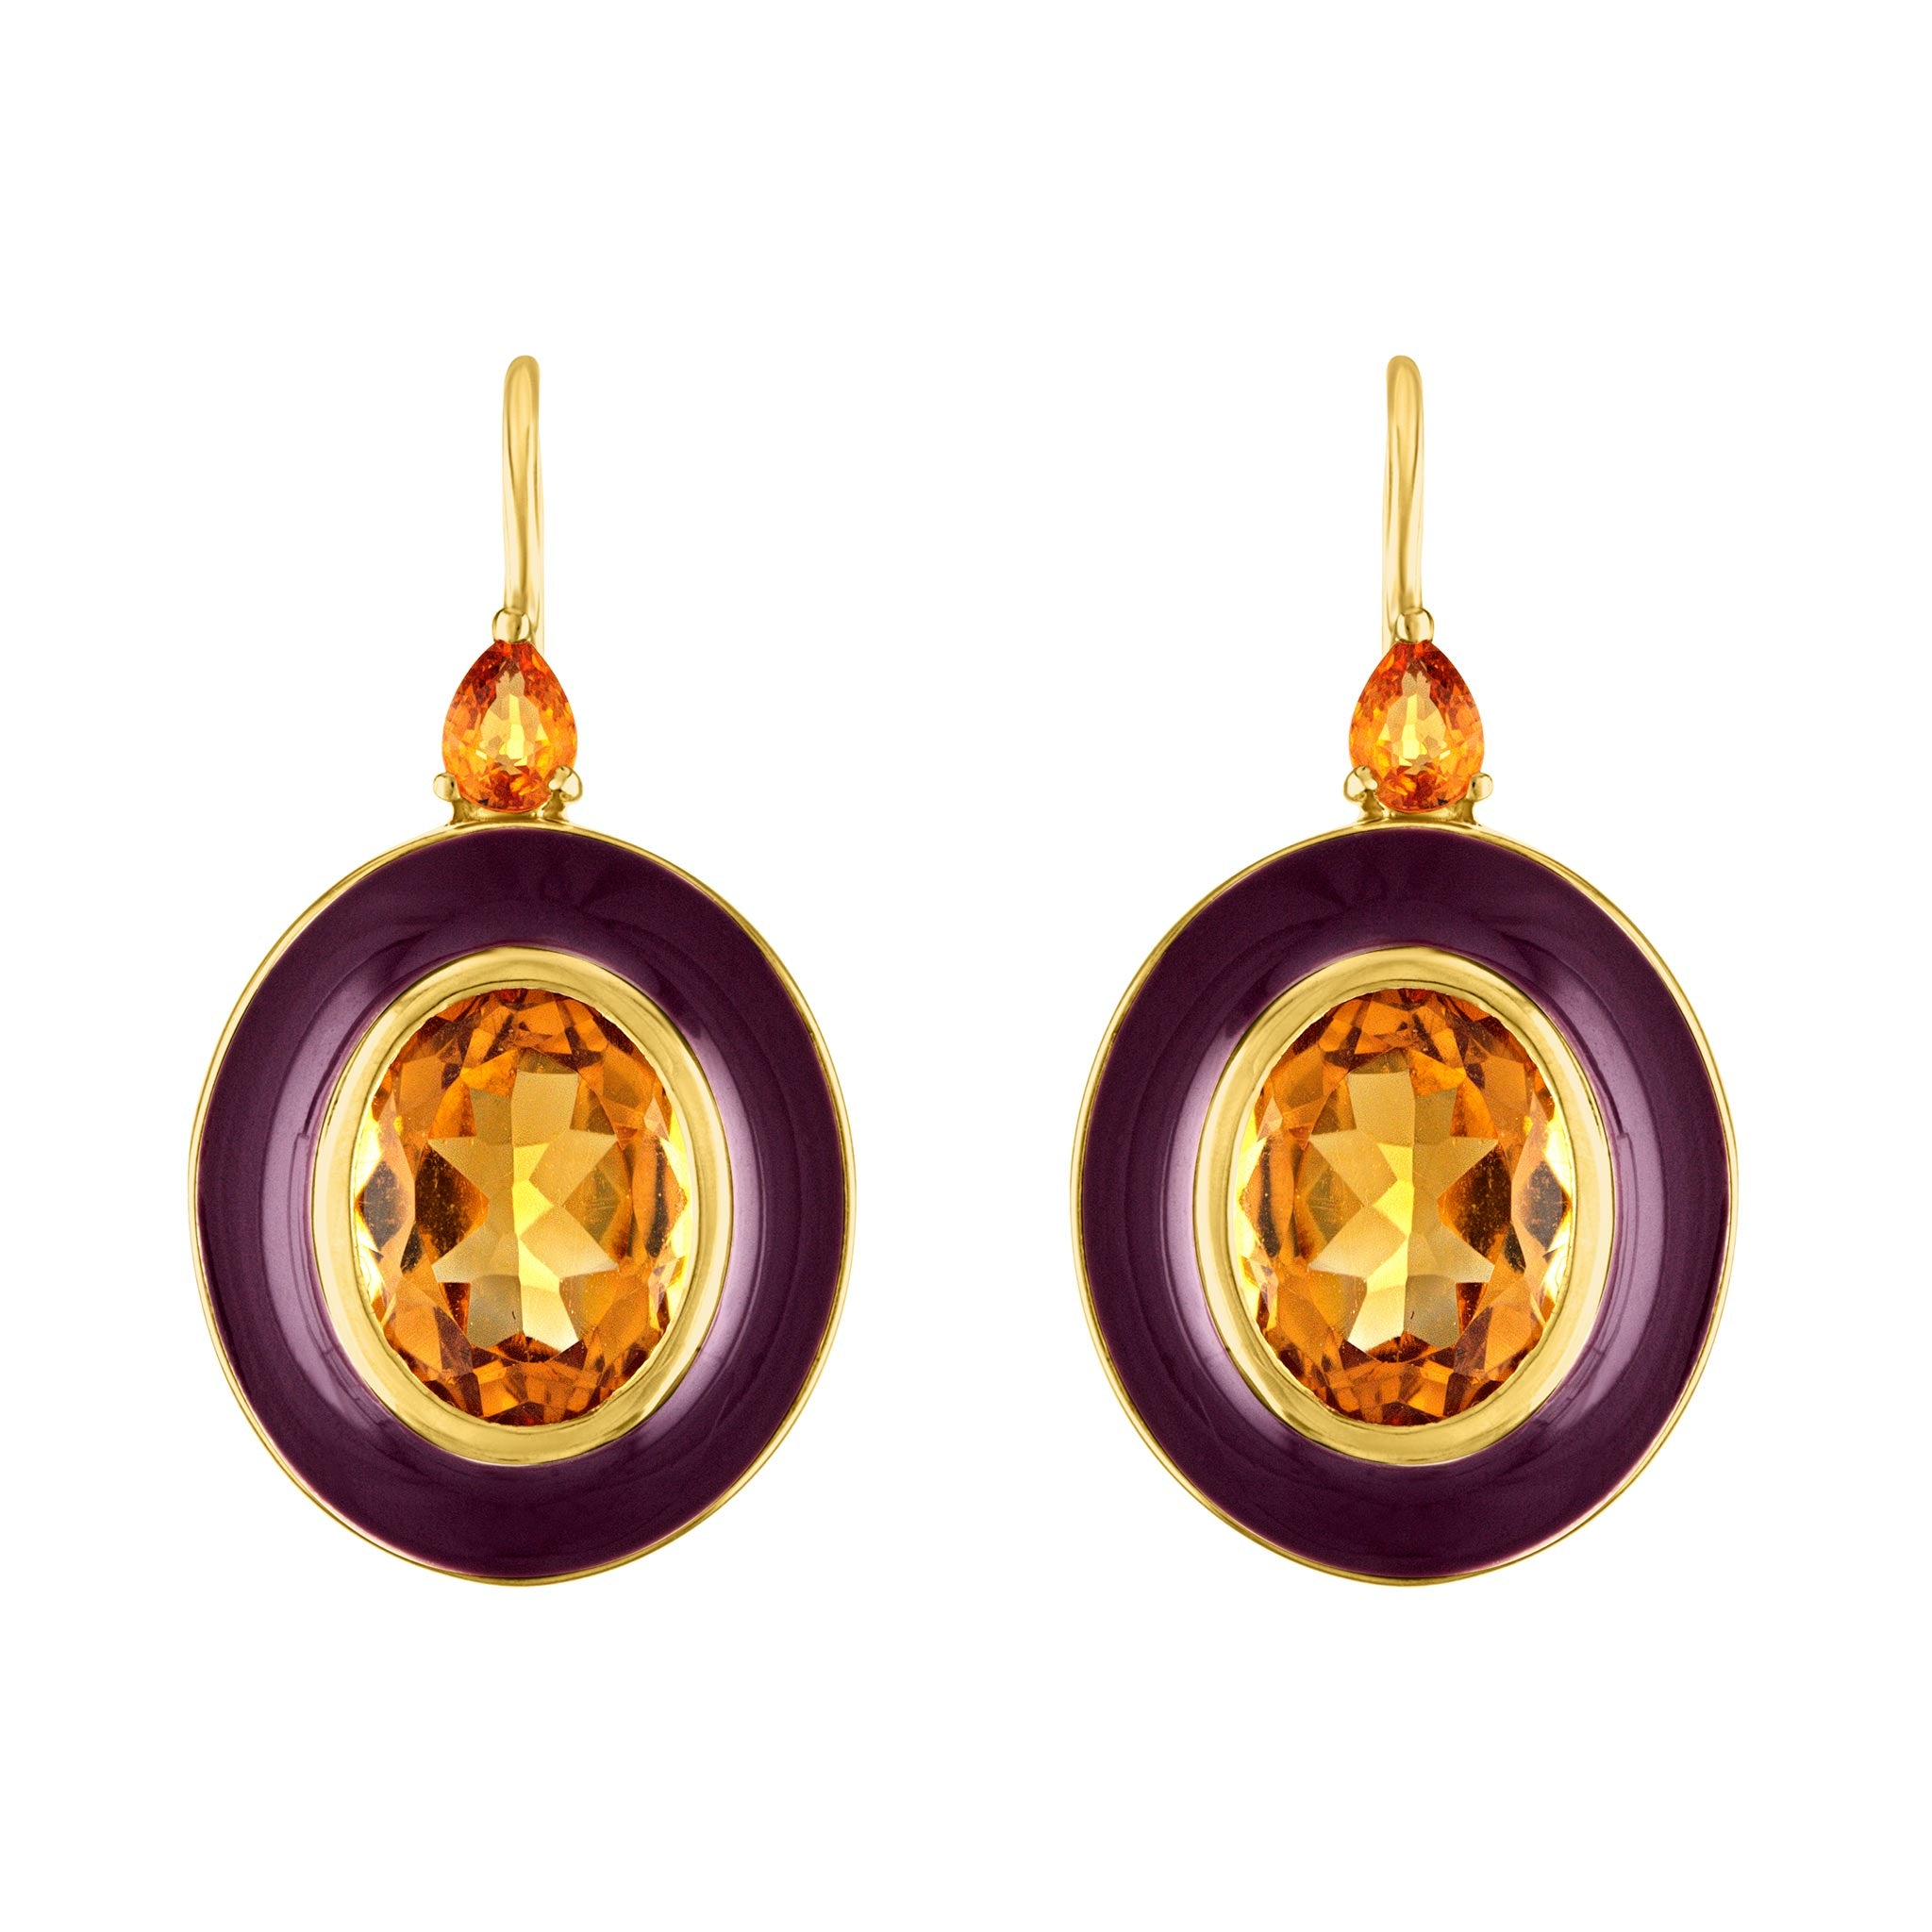 Amy Glaswand Fine Jewelry | Earrings | Royal Pop Enamel Earrings